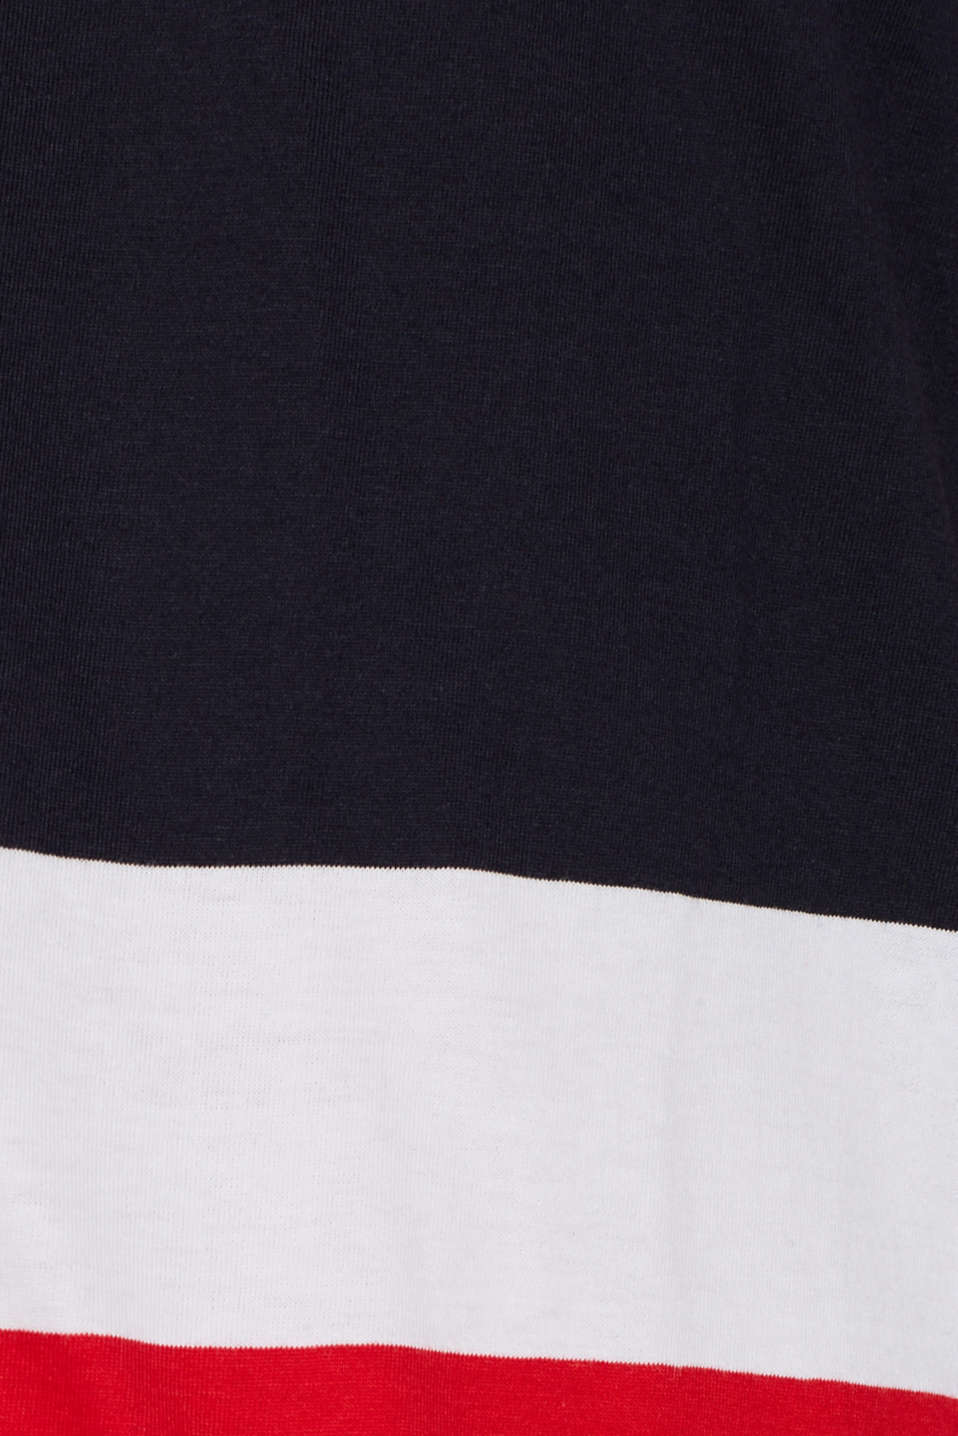 Striped T-shirt, 100% cotton, NAVY, detail image number 5